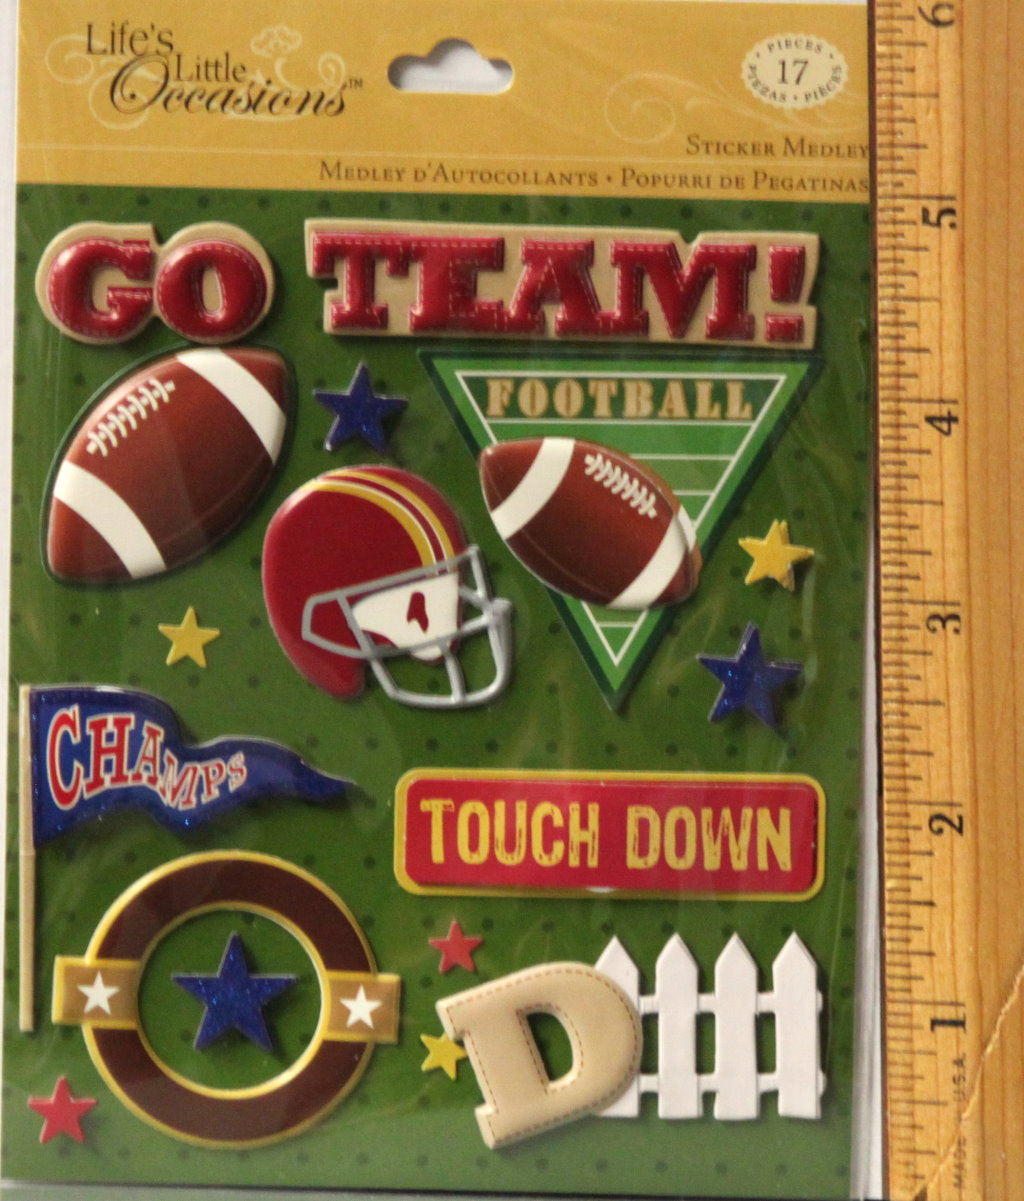 K & Company Life's Little Occasions Football Dimensional Sticker Medley